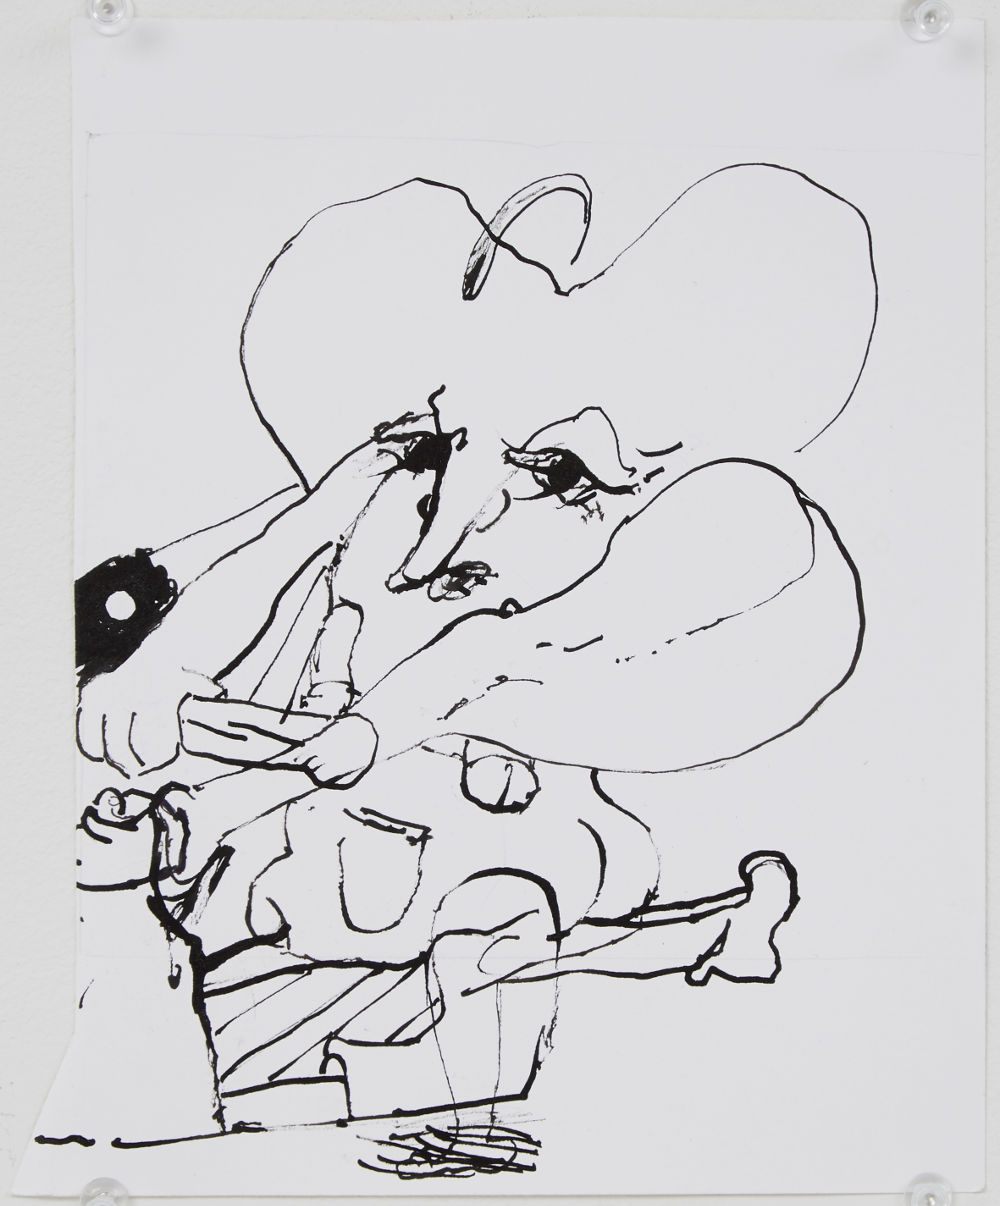 Stefanie Heinze, Untitled (How to Go On), 2014, ink on paper, 21.3 x 17.8 cm, 8.4 x 7 in. Courtesy Pippy Houldsworth Gallery, London. Copyright the artist.